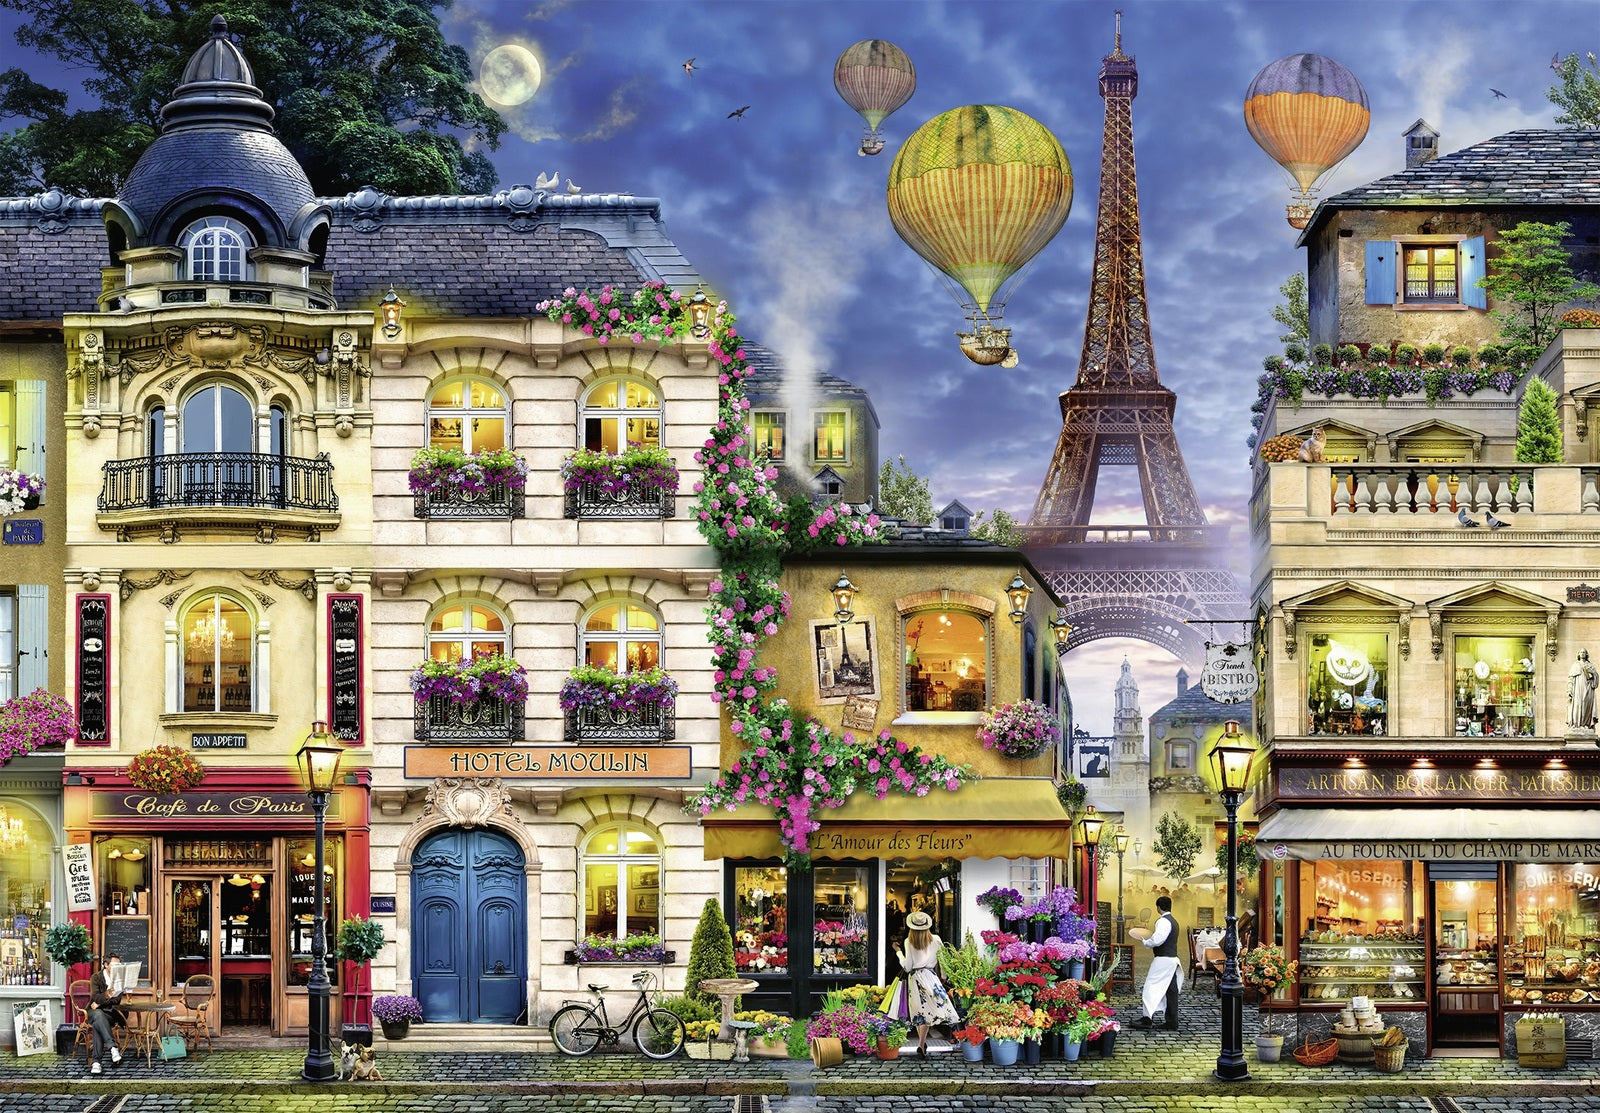 Ravensburger: 18,000 Piece Puzzle - Evening Walk in Paris